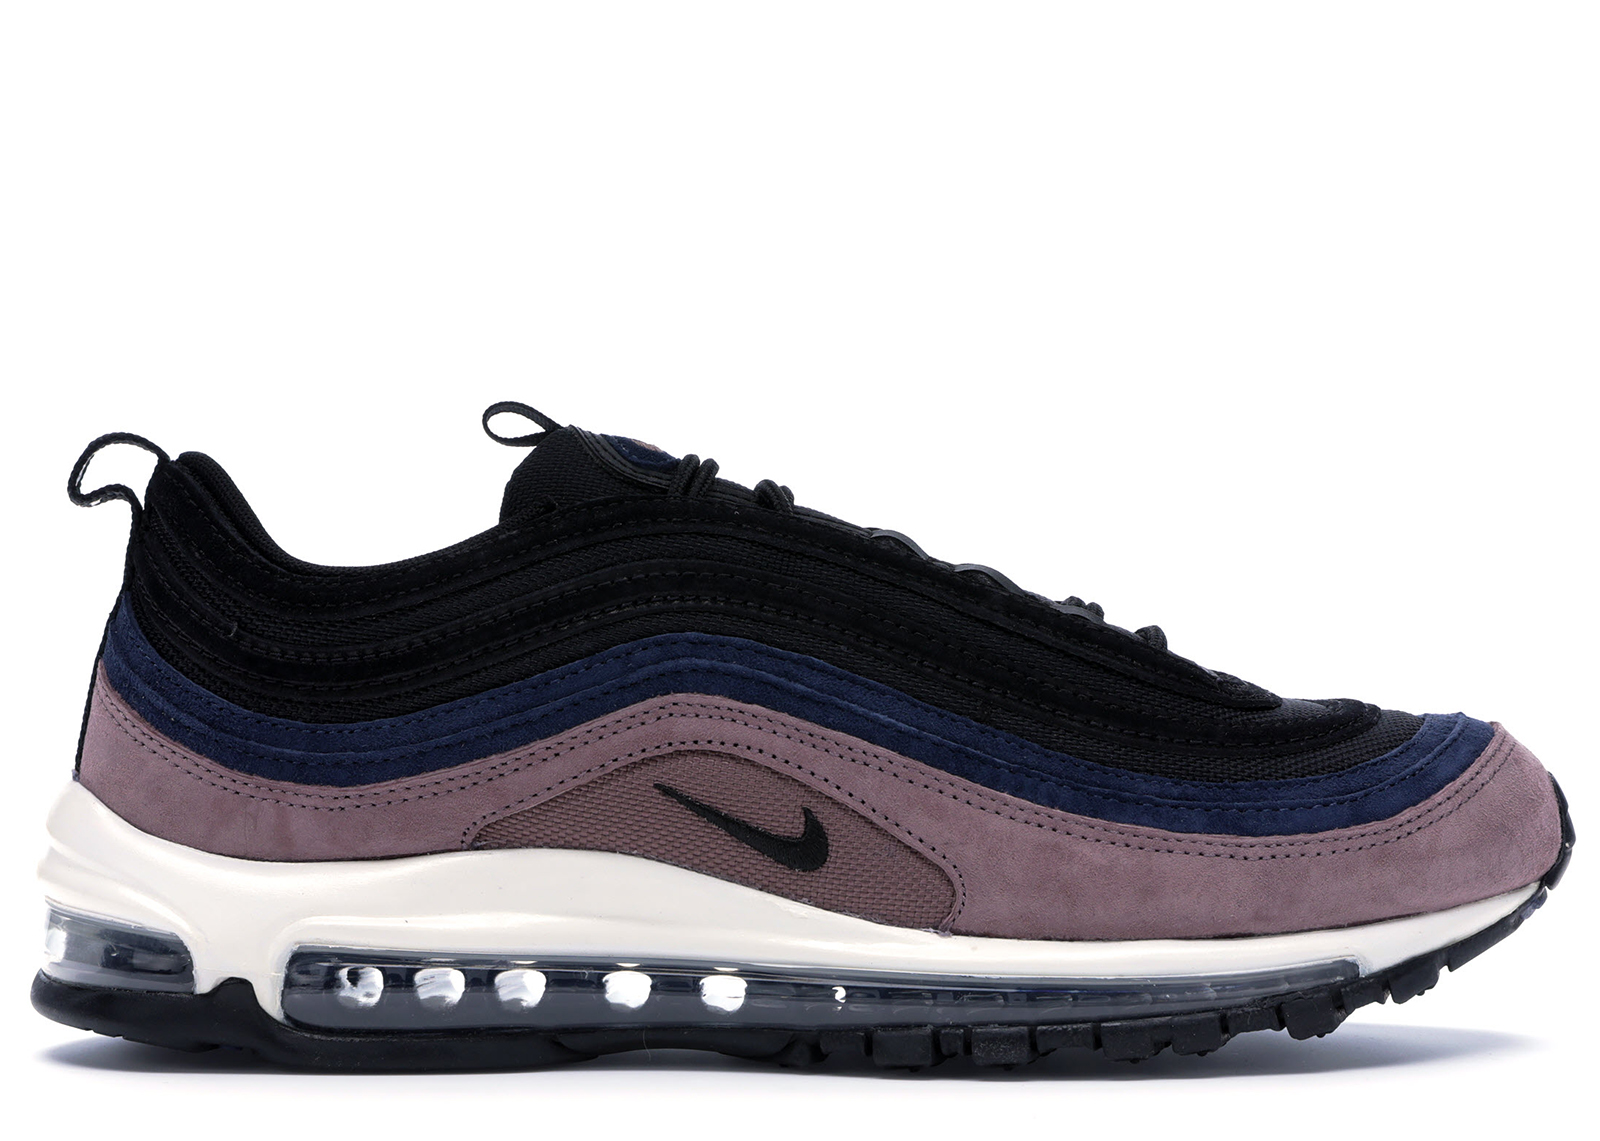 Nike Air Max 97 Smokey Mauve | 312834 204